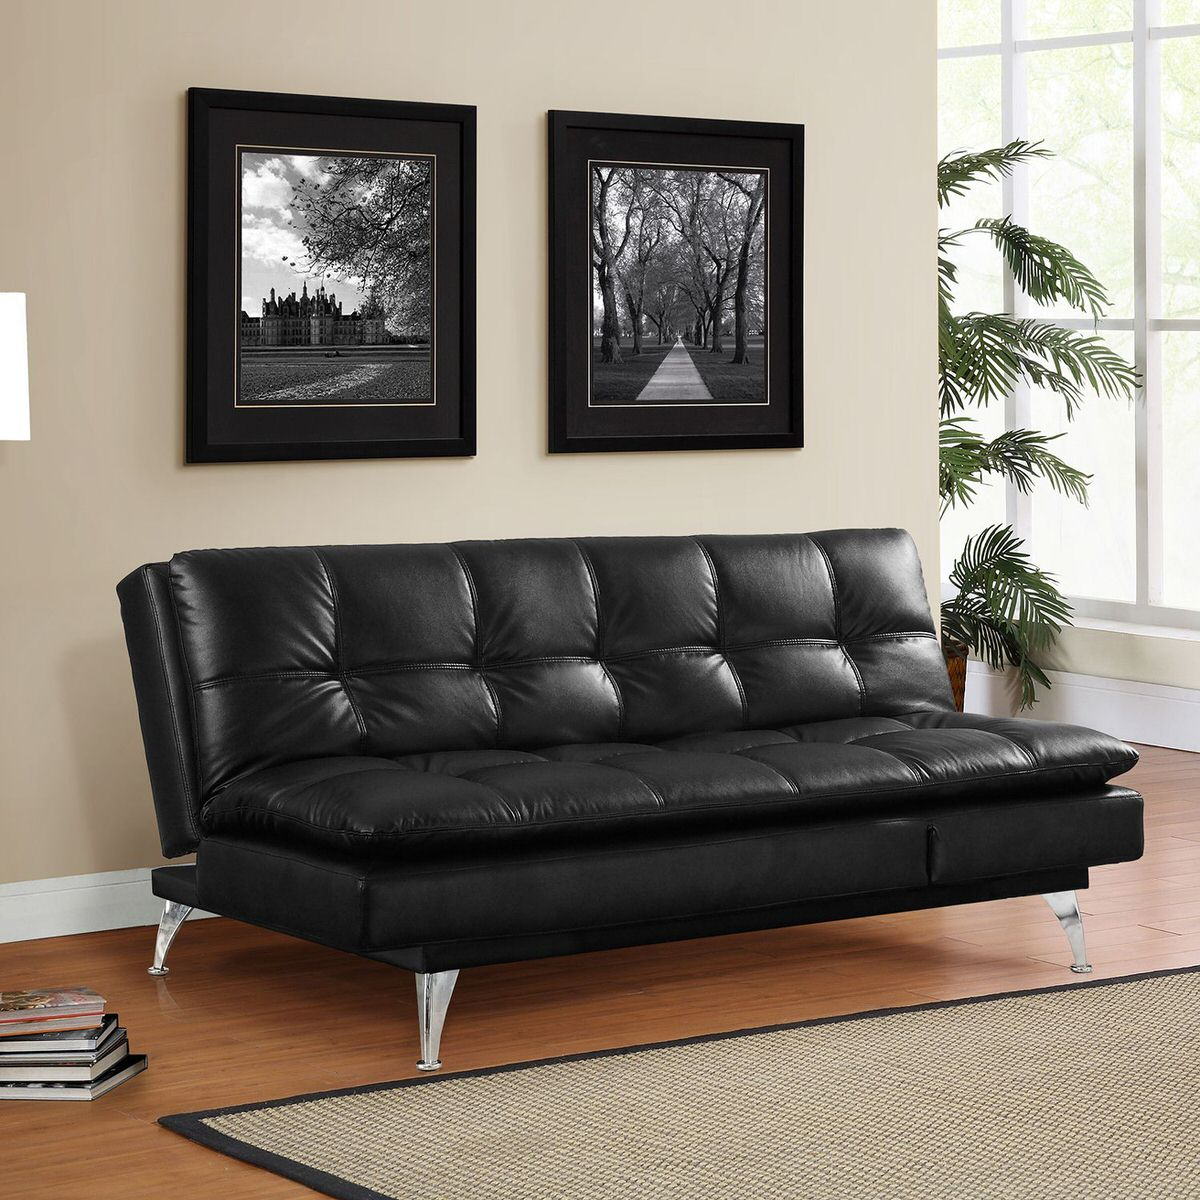 Gabrielle Setra Sofa Bed Black By Lifestyle Solutions (Lifestyle Solutions)